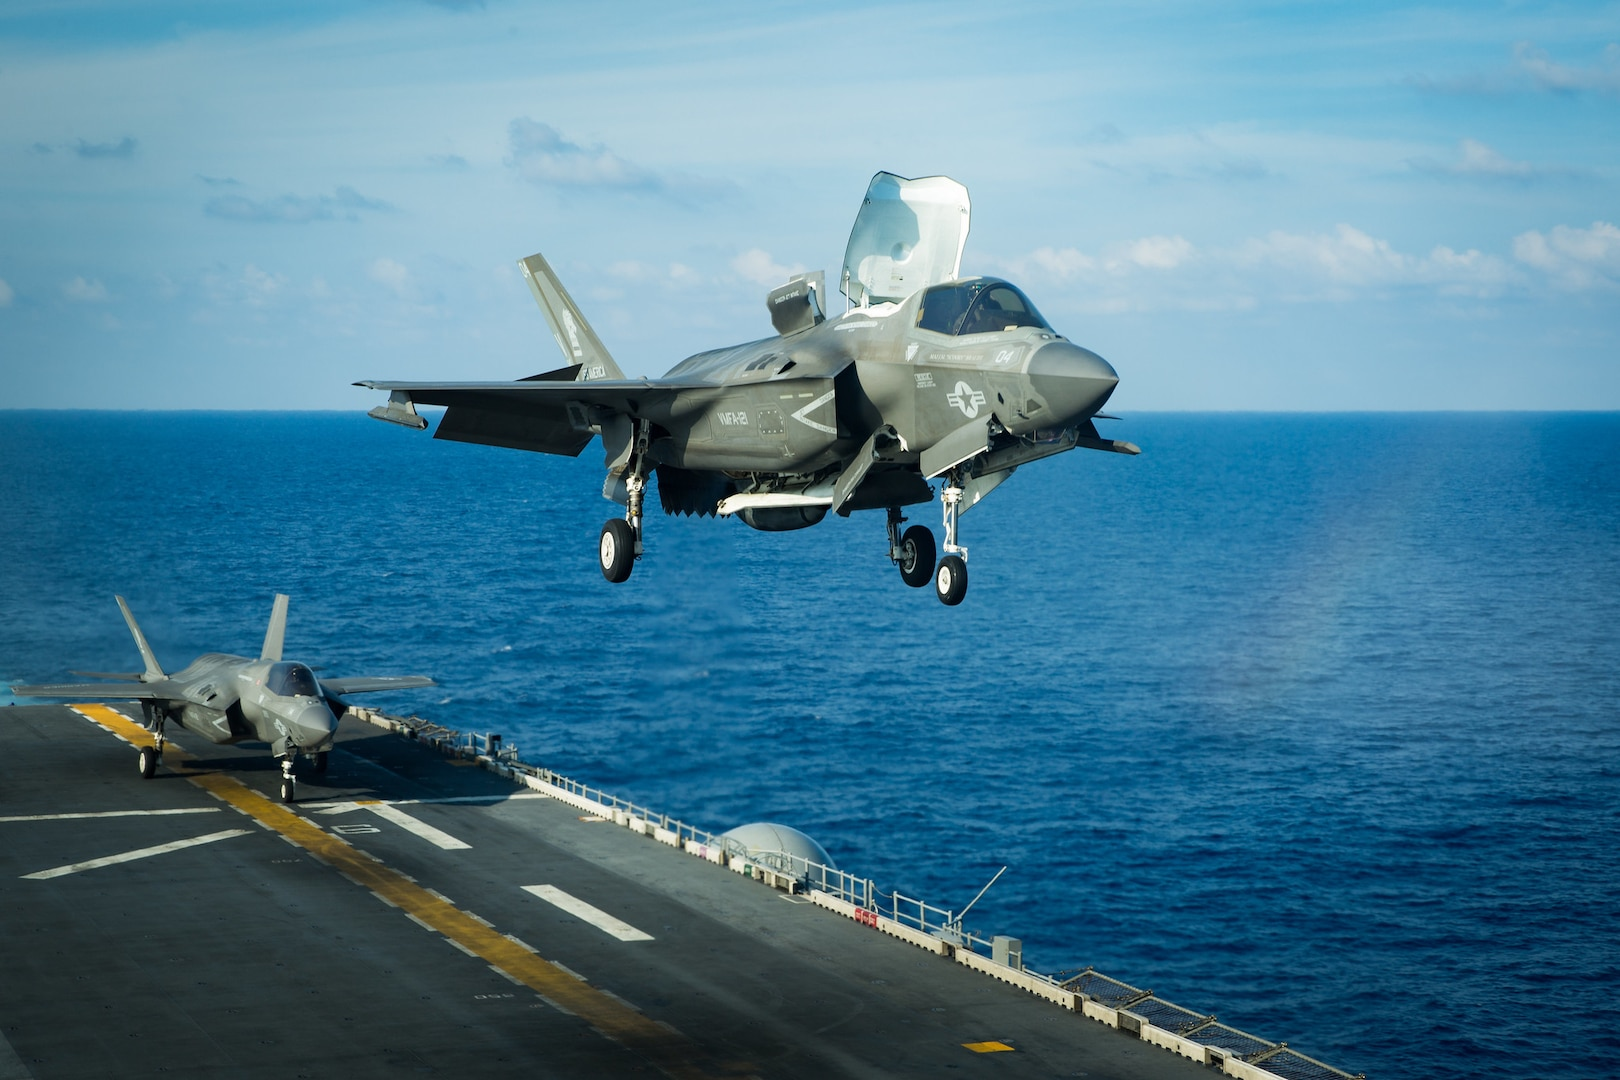 USS America, 31st MEU with F-35B fighter Aircraft Operate in South China Sea